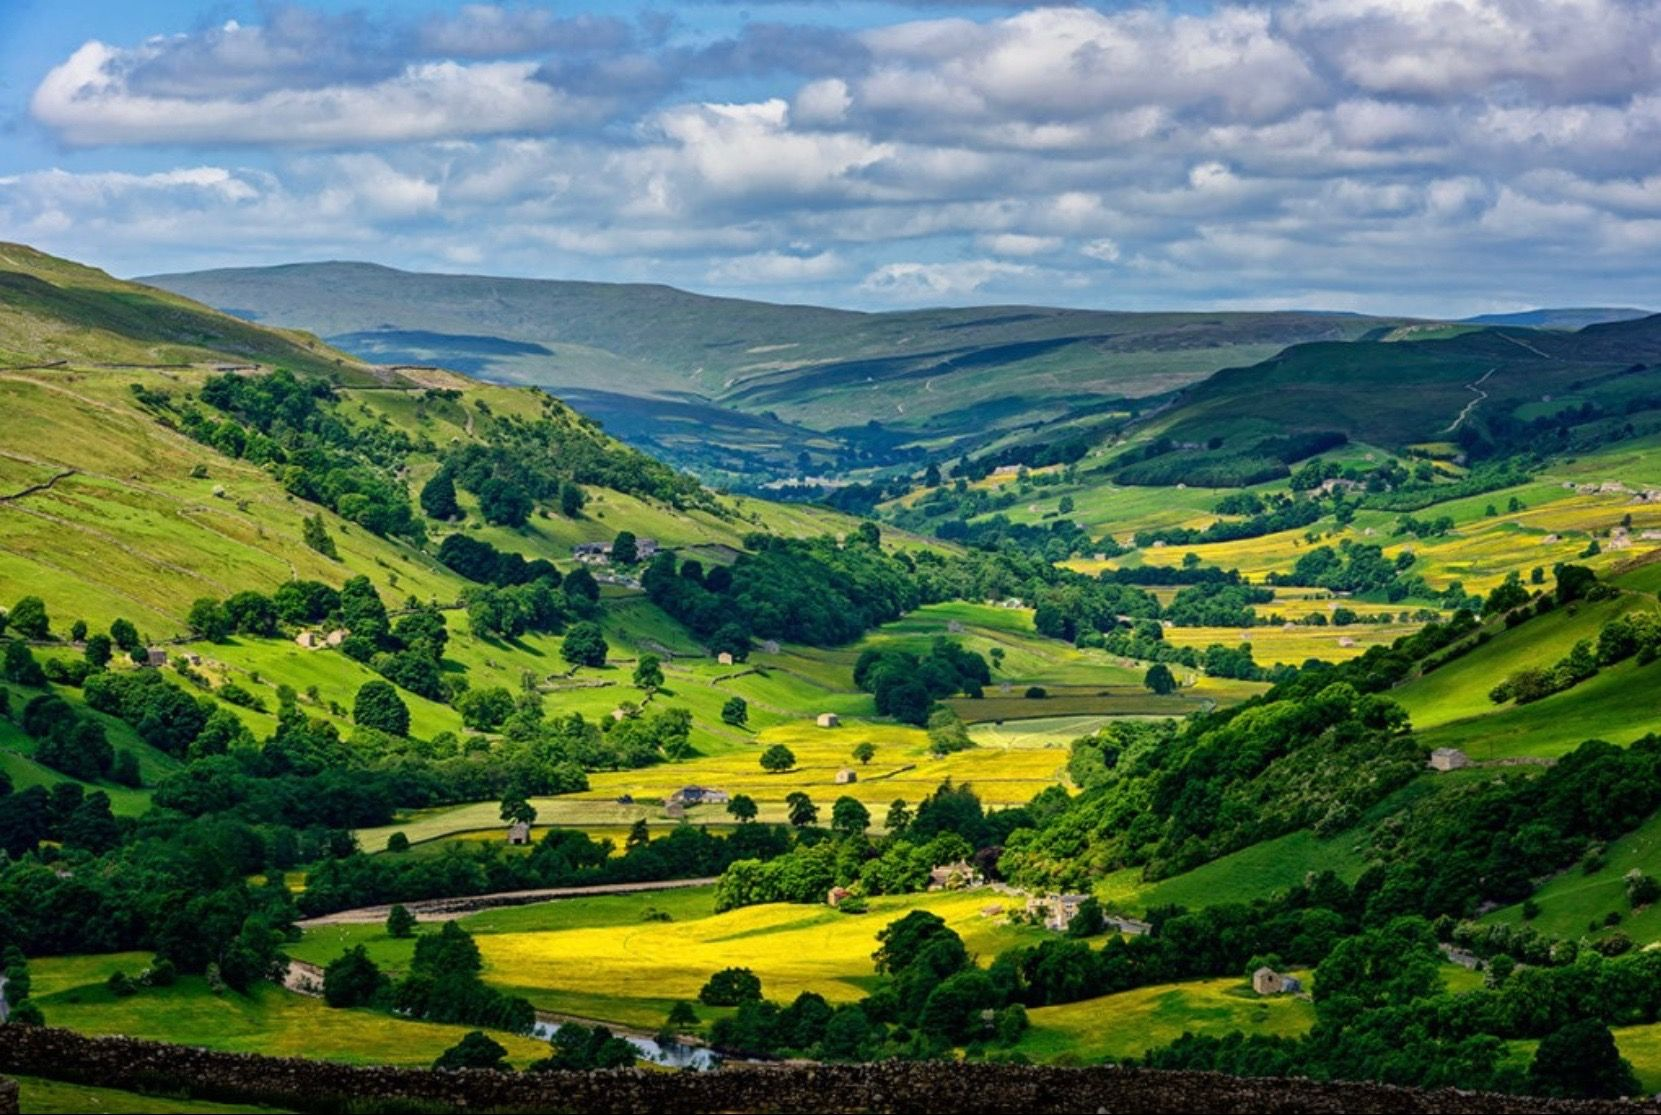 Pin by Susan Elizabeth on England, Scotland, Wales (With